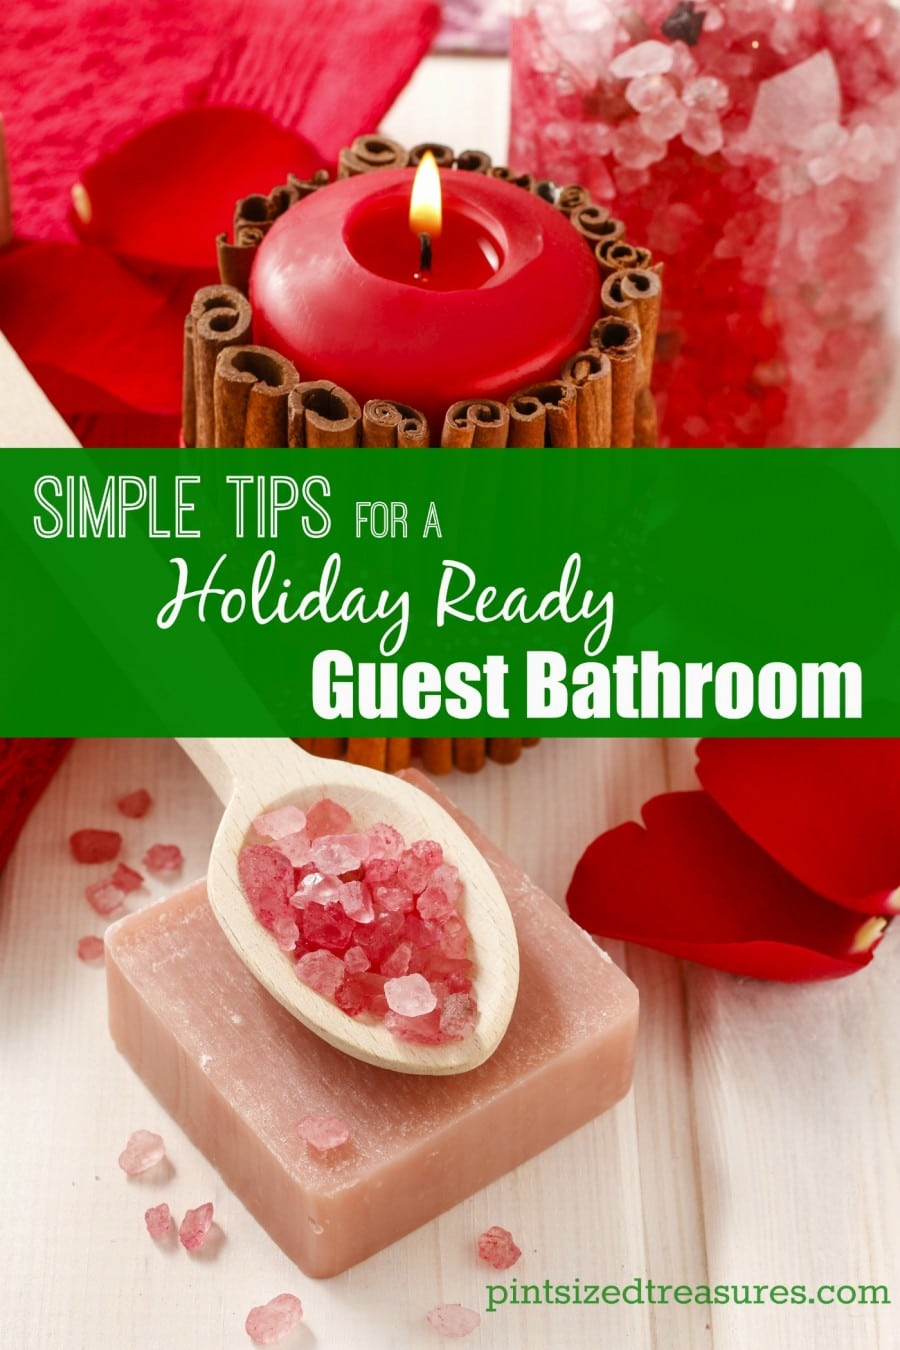 guest bathroom holiday decor ideas